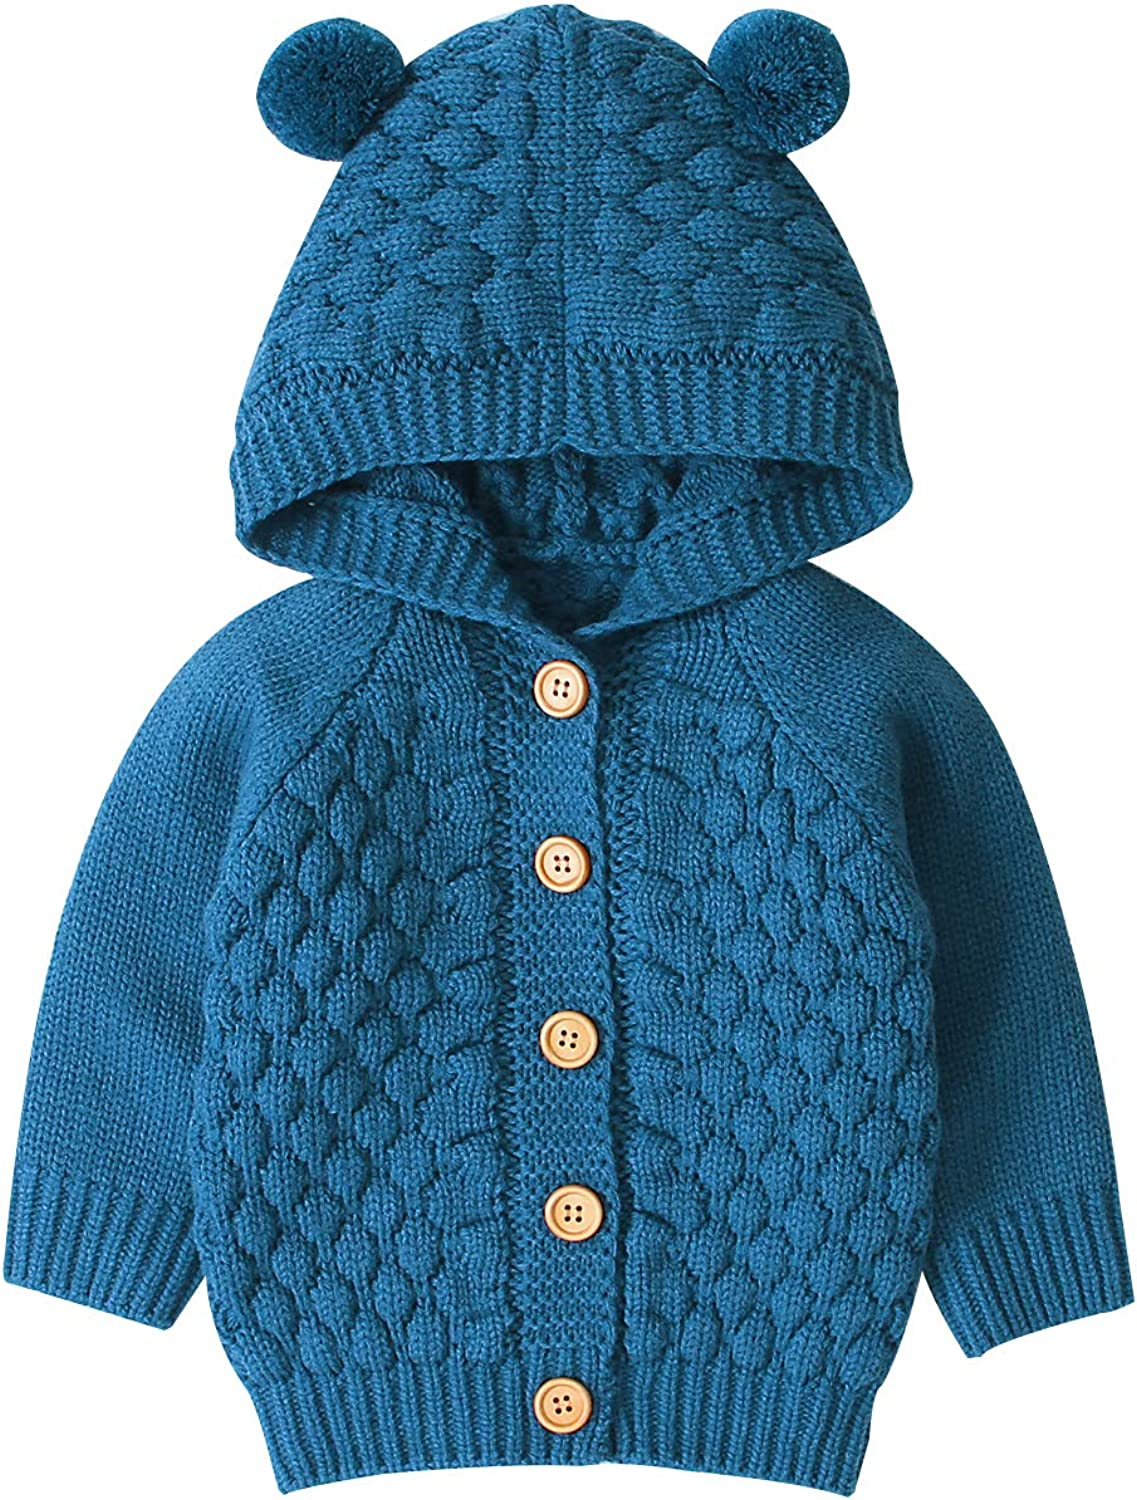 Baby Girls Knit Sweater Hoodies Warm Tops Toddler Infant Outerwear Coat